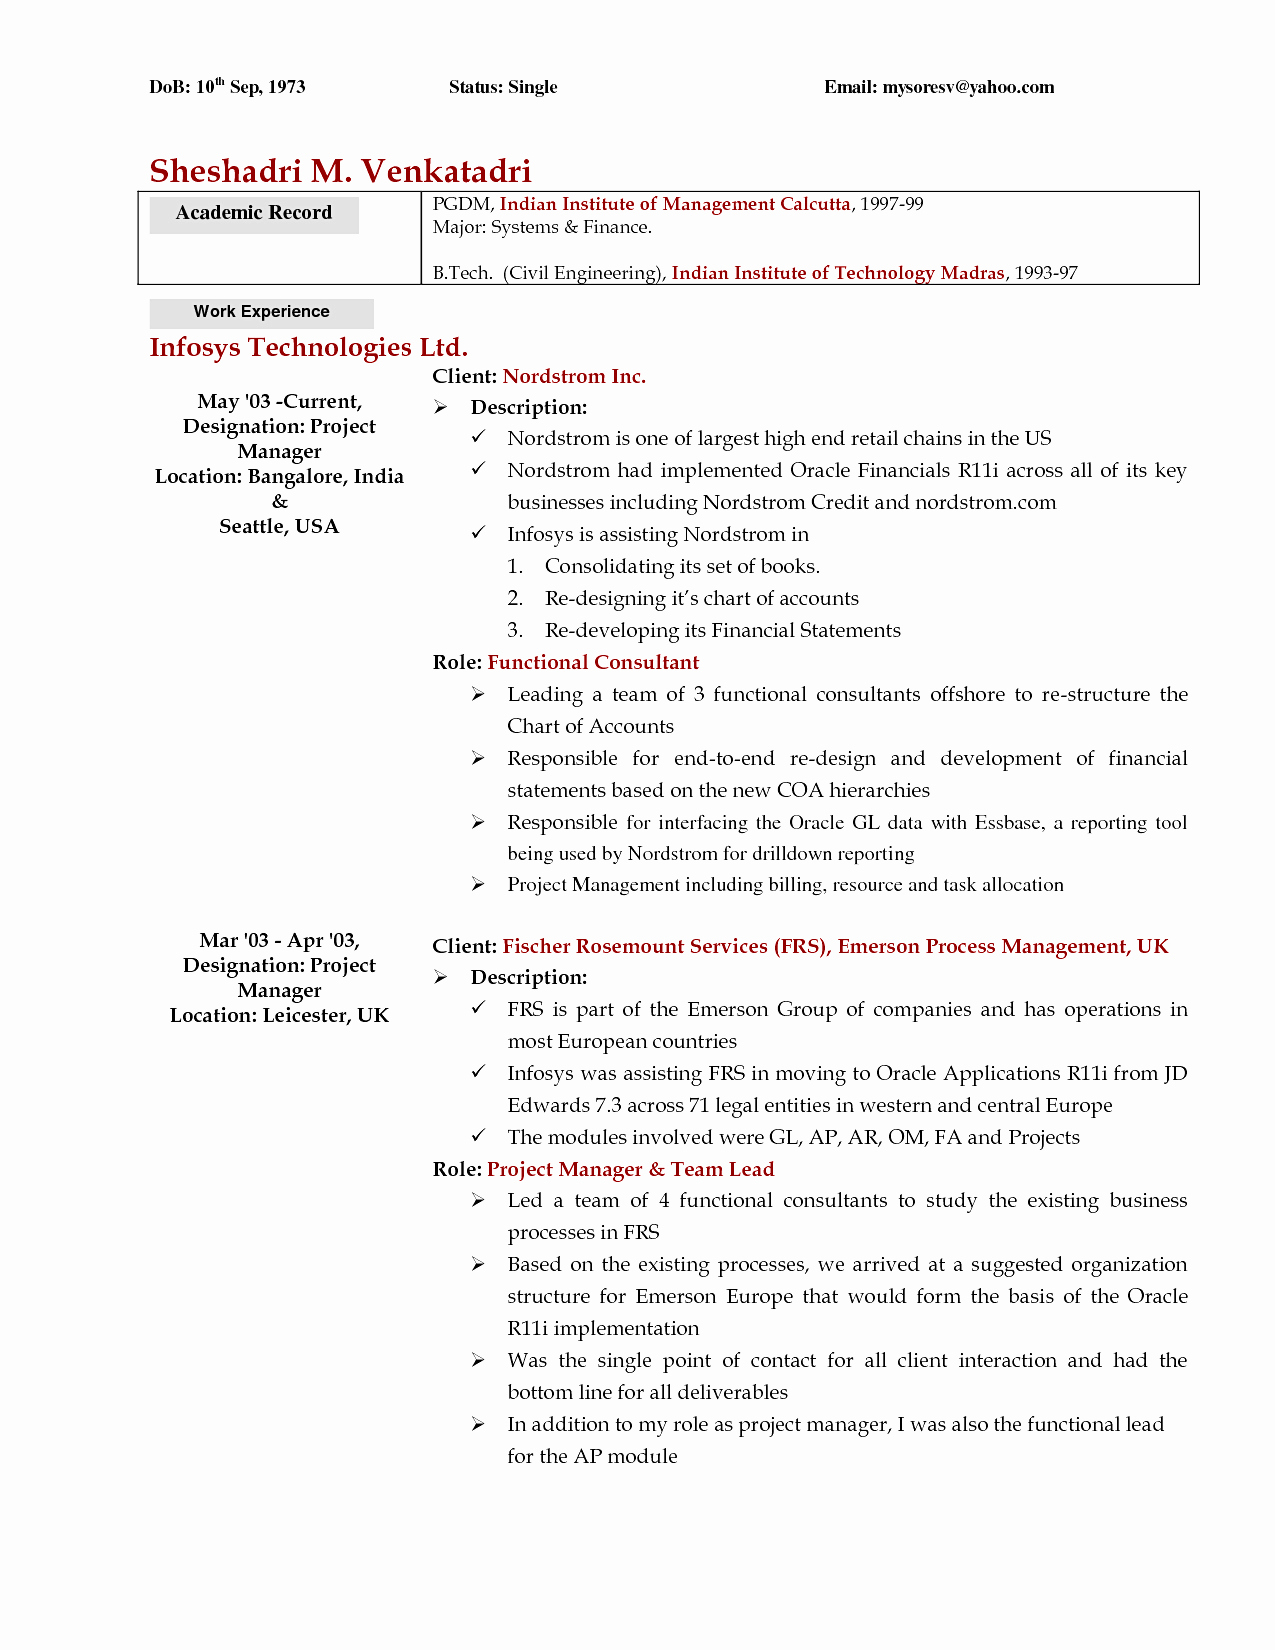 Scrum Master Resume Example - Resumes Scrum Master Resume Example 20 Resume Examples for